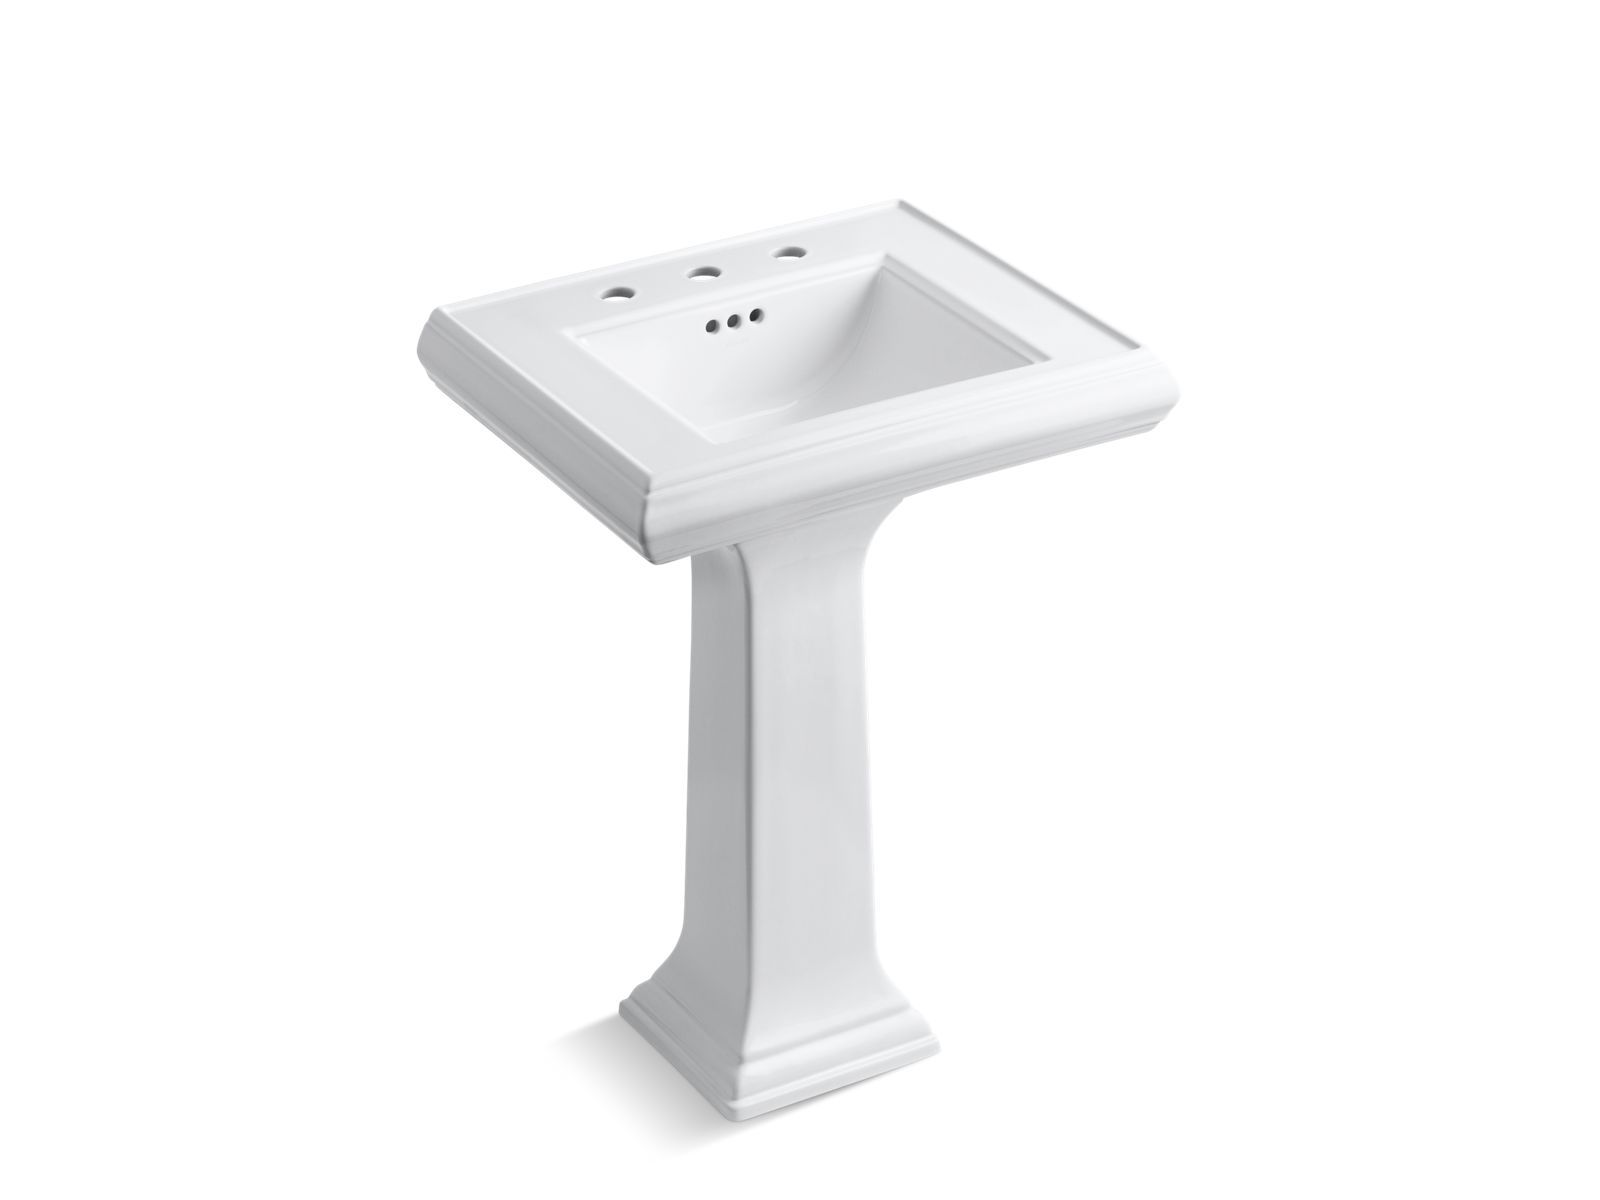 Memoirs Pedestal Sink With Classic Design 8 Inch Centers K 2238